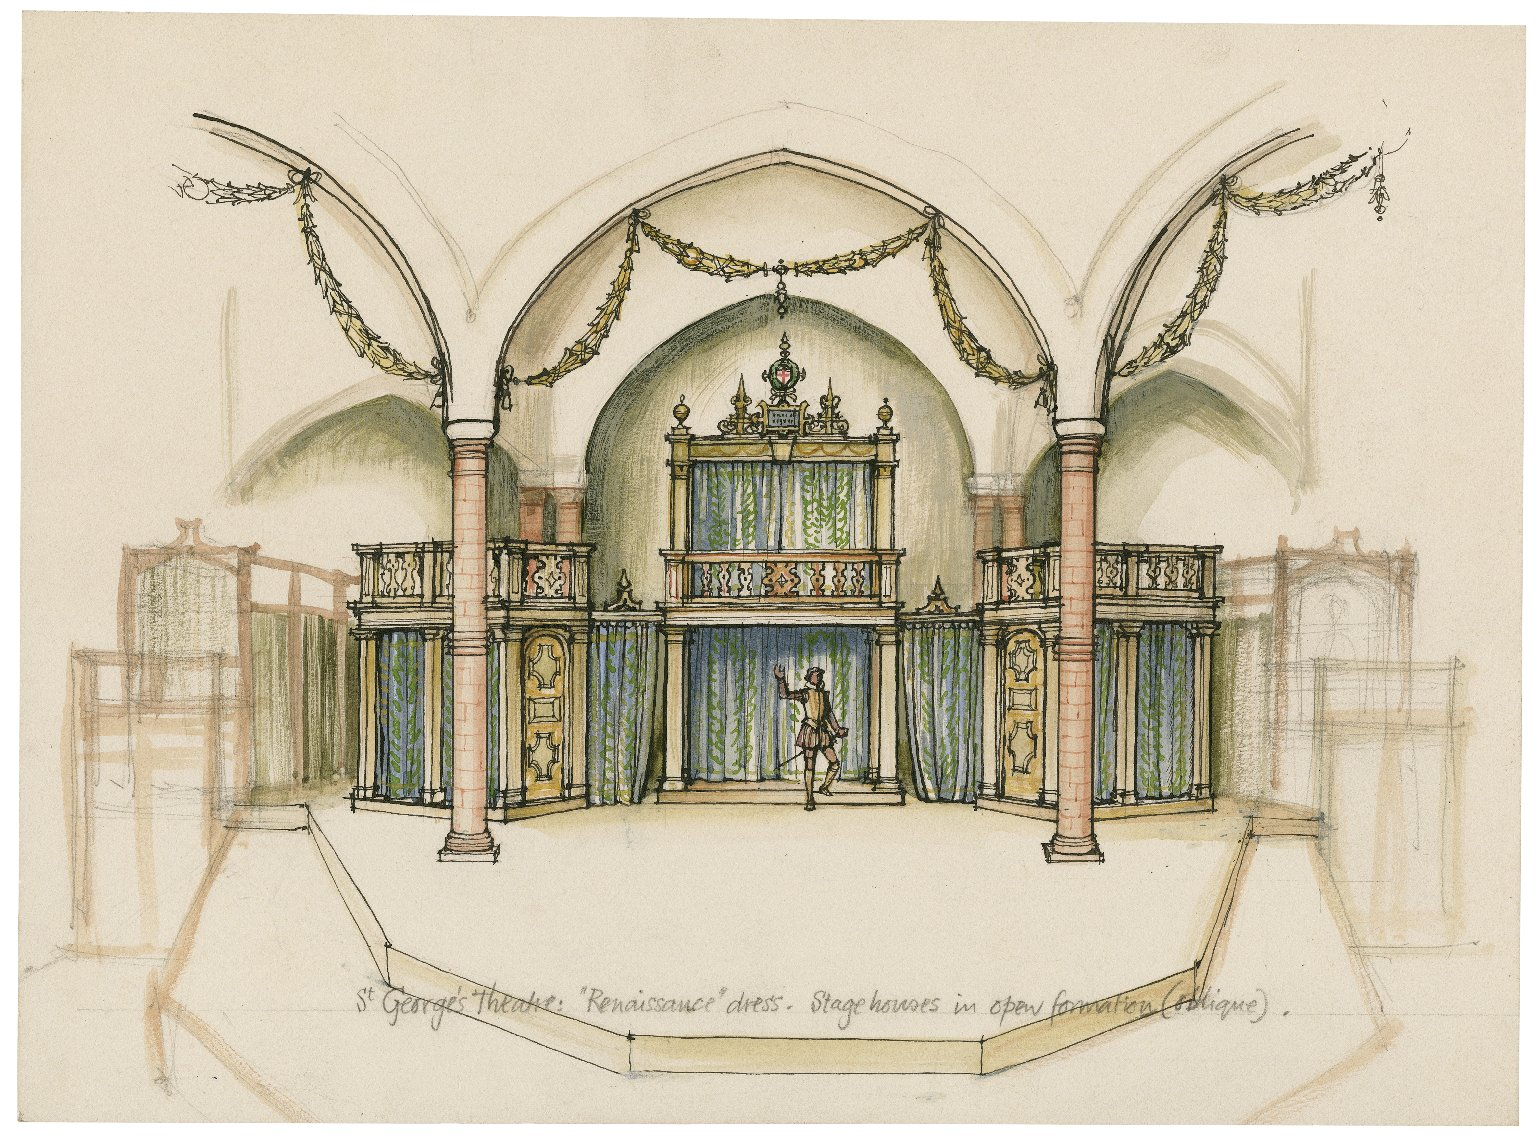 "St. Georges Theatre. Stage-houses in open formation ""Renaissance dress"""